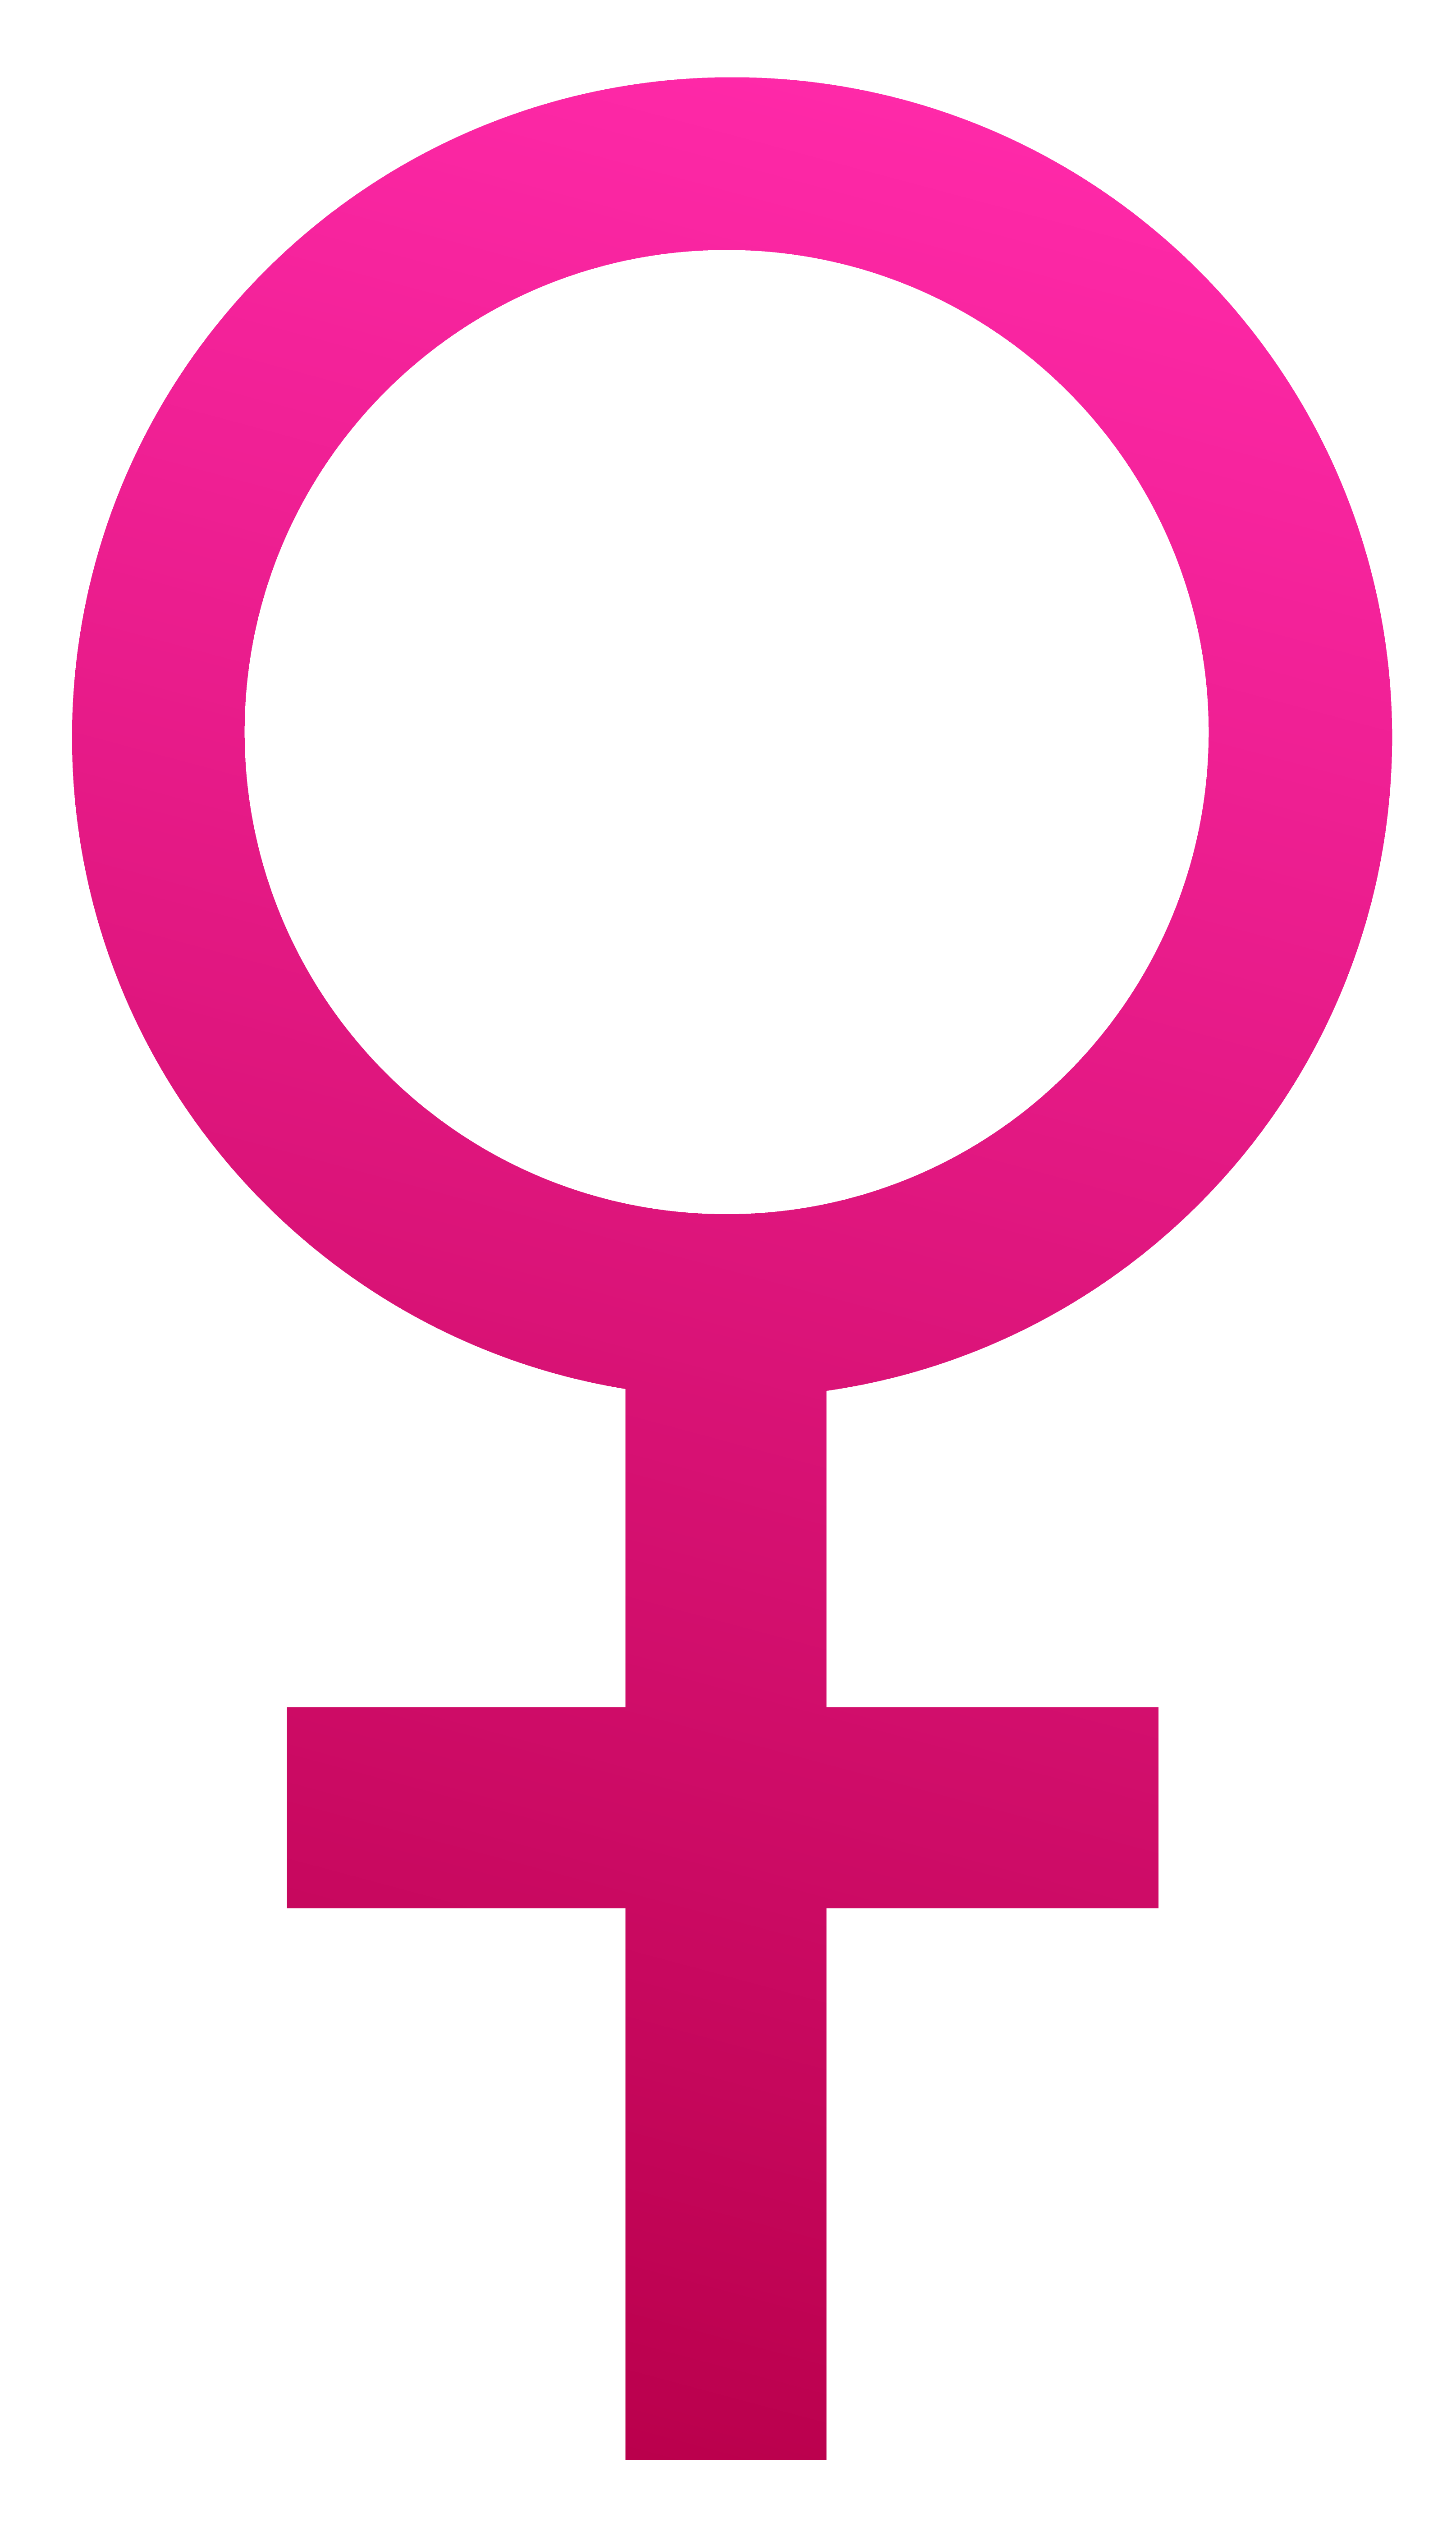 Female Sign Gender Symbol  1031.48 Kb